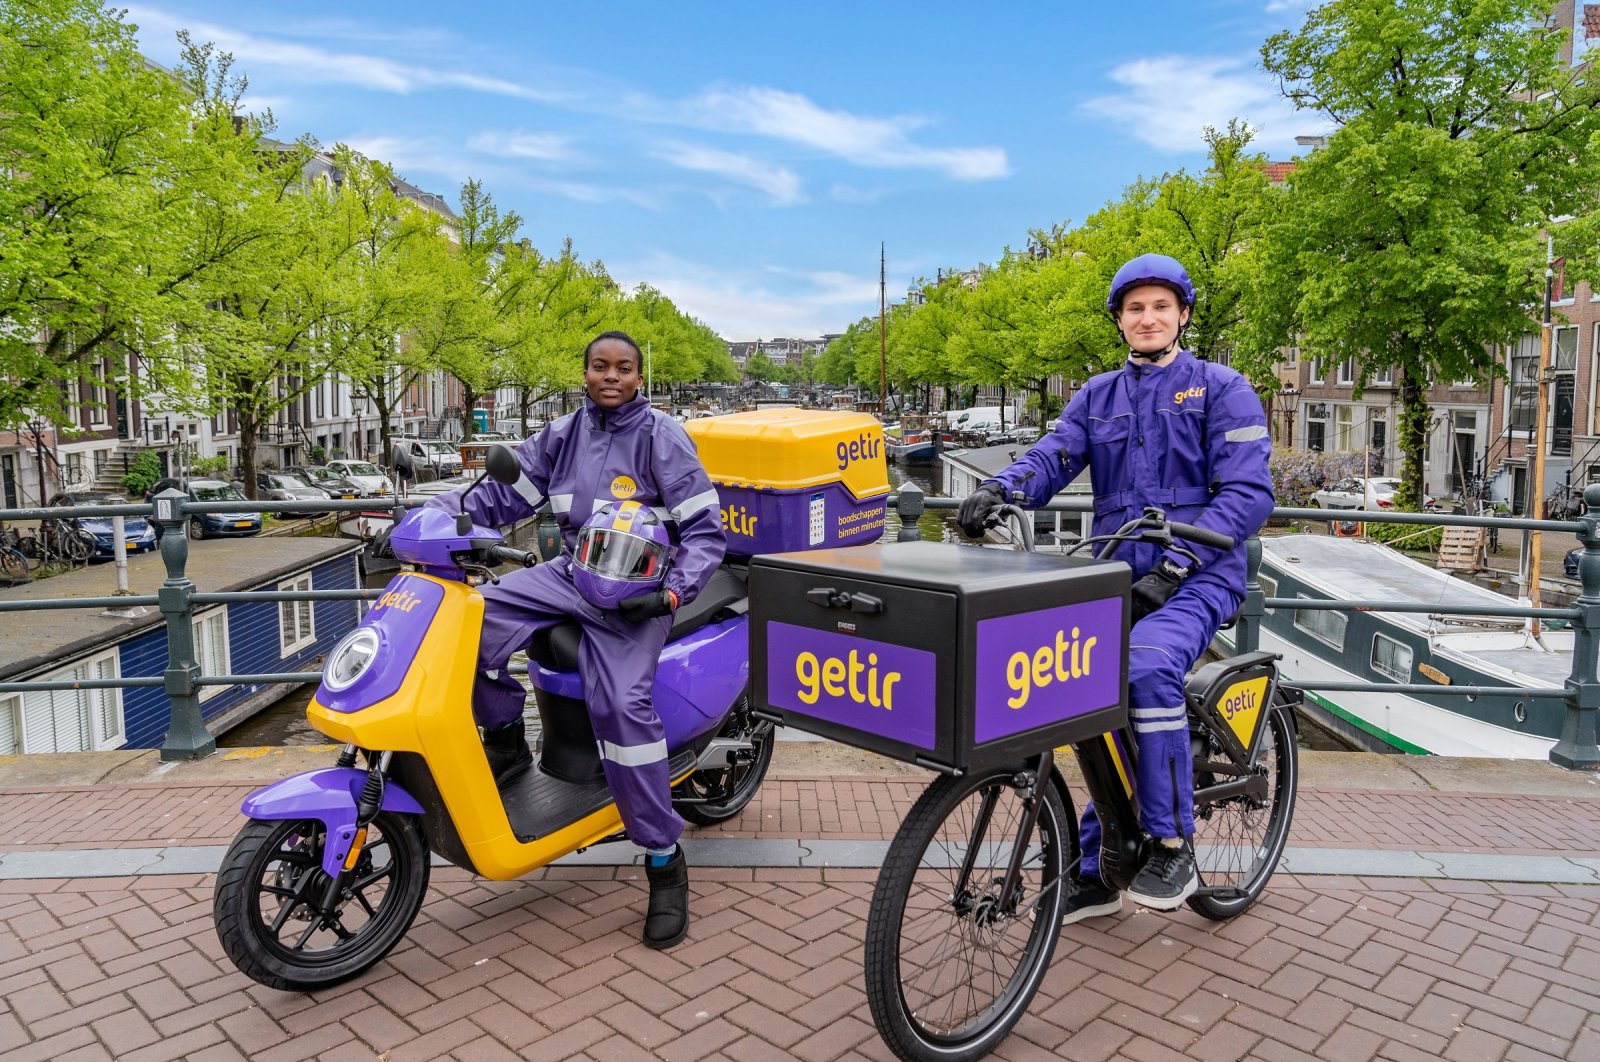 Getir couriers pose in front of a canal in Amsterdam, The Netherlands, May 28, 2021. (Courtesy of Getir)